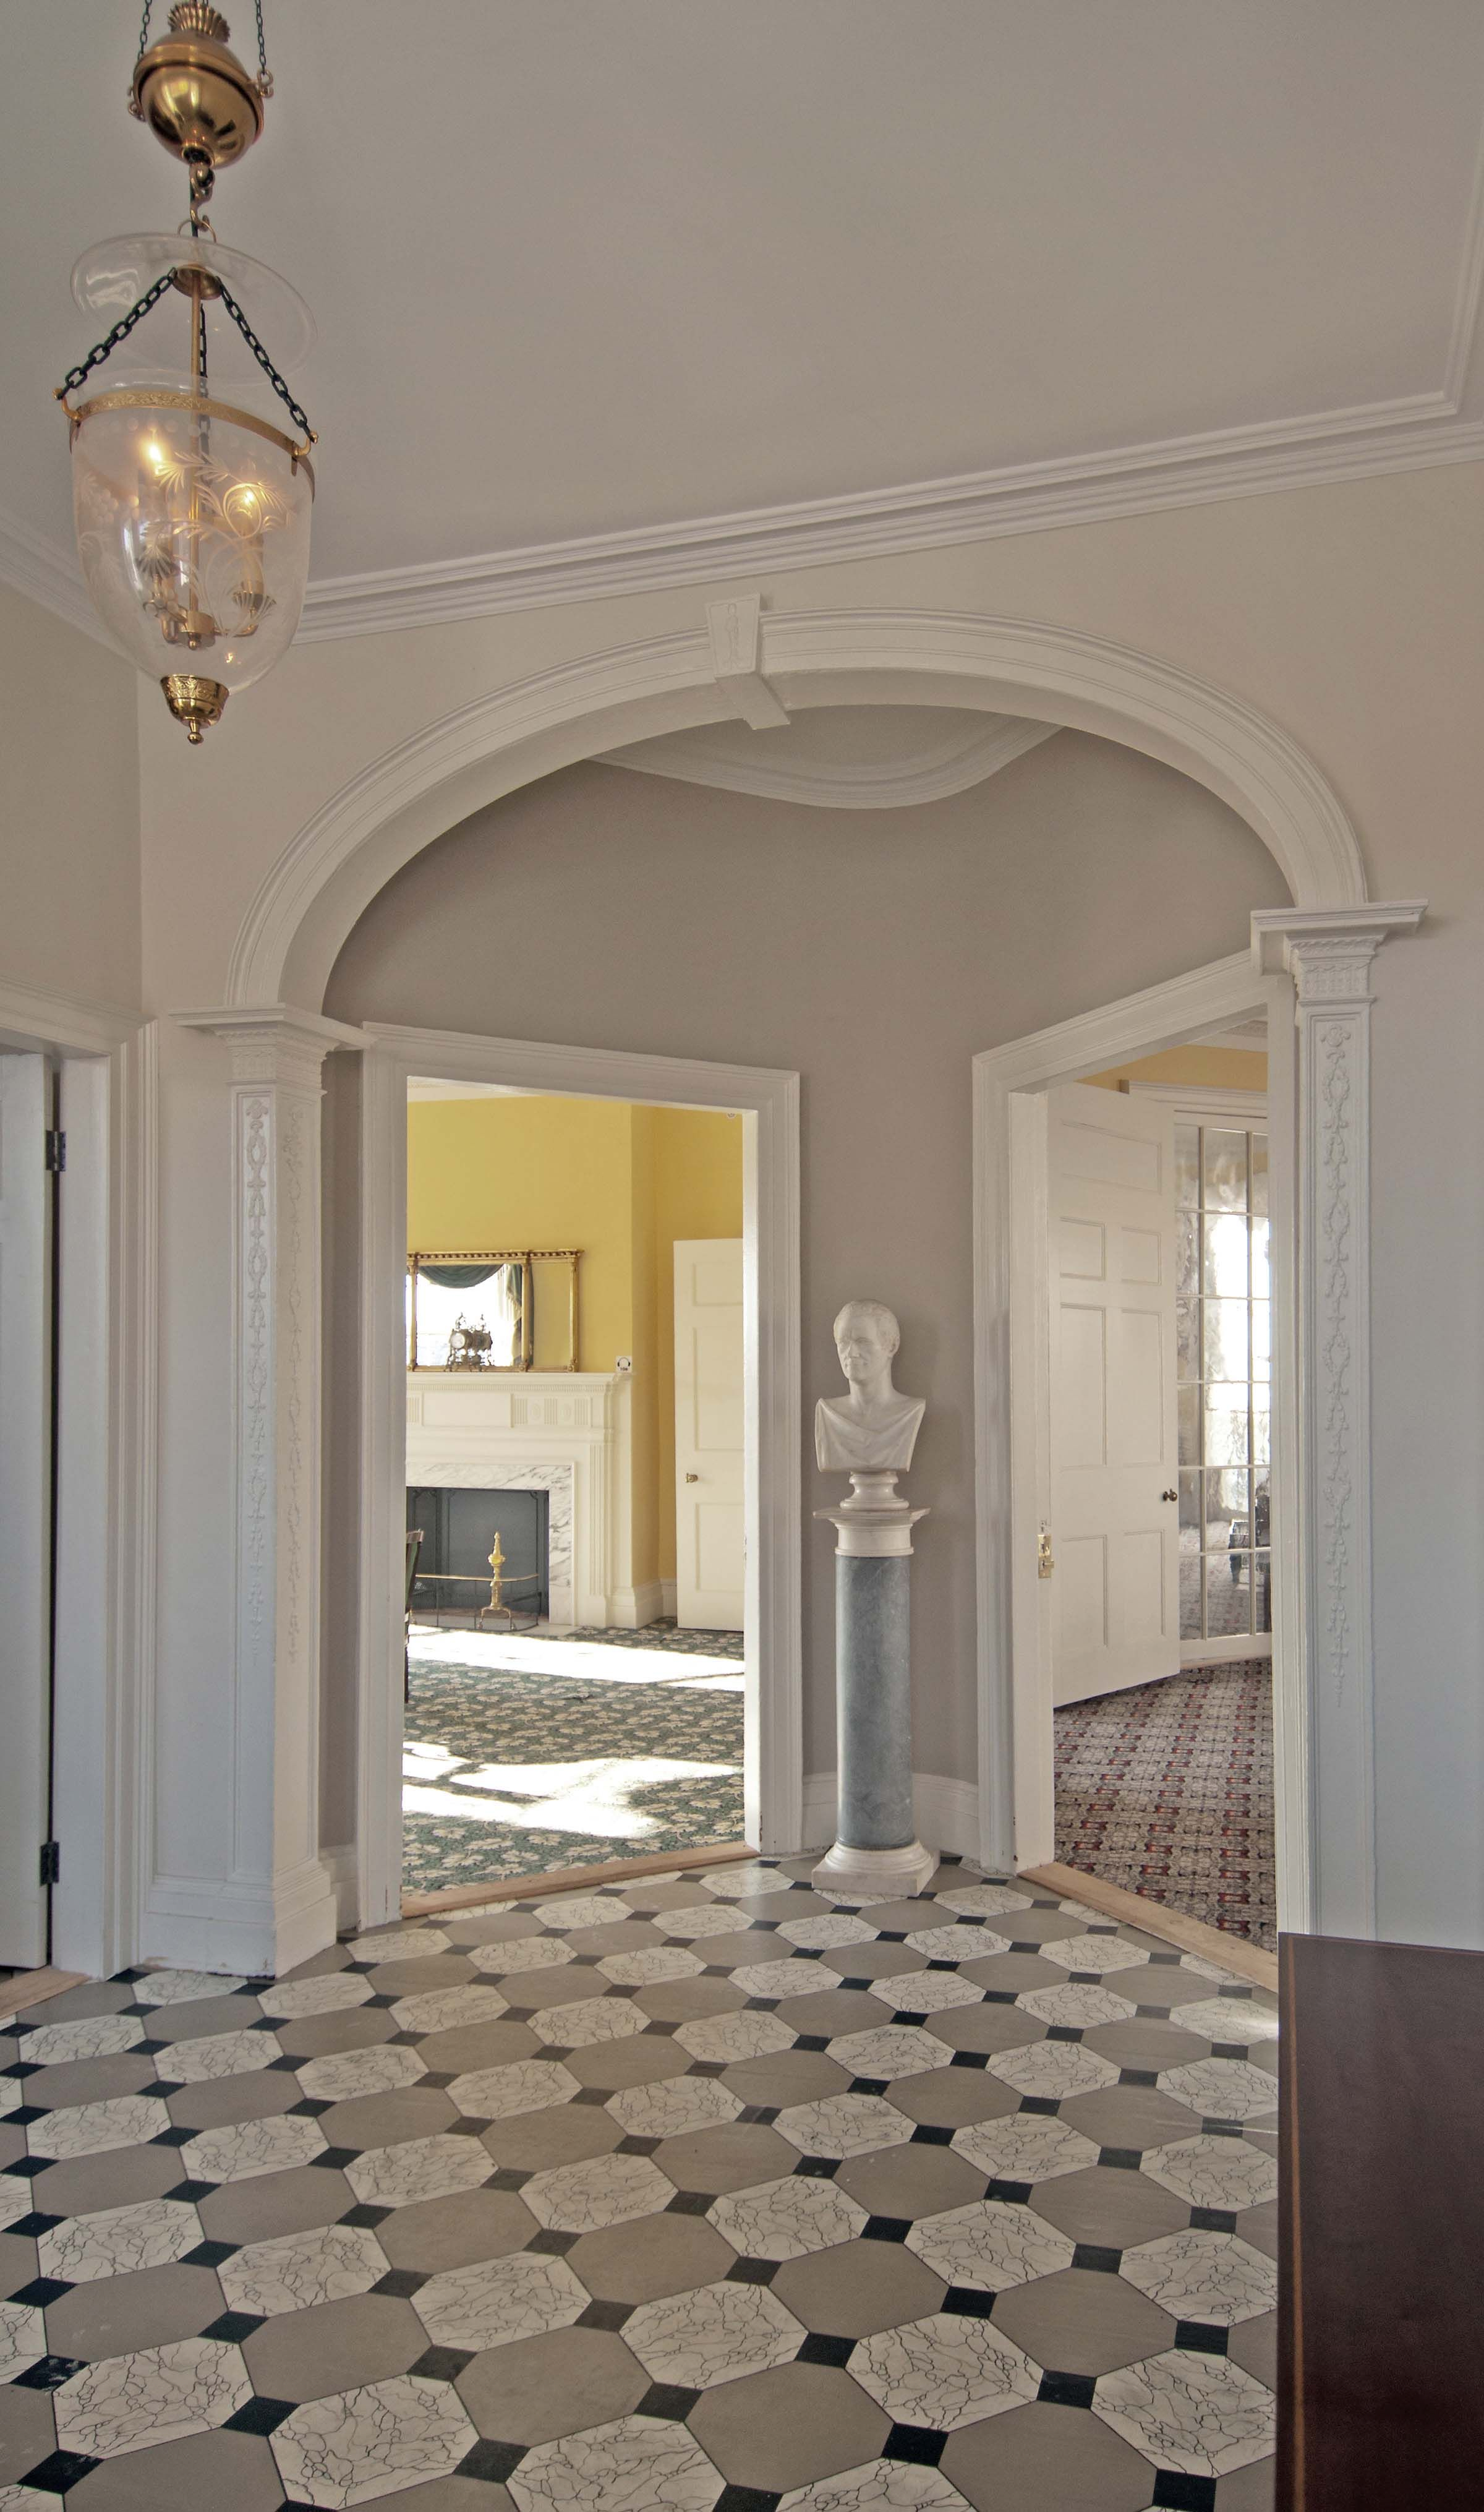 As the Entrance Hall shows, Hamilton Grange, designed by New York City Hall architect John McComb, is architecturally very ambitious for such a small house. National Park Service Photographer Kevin Daley